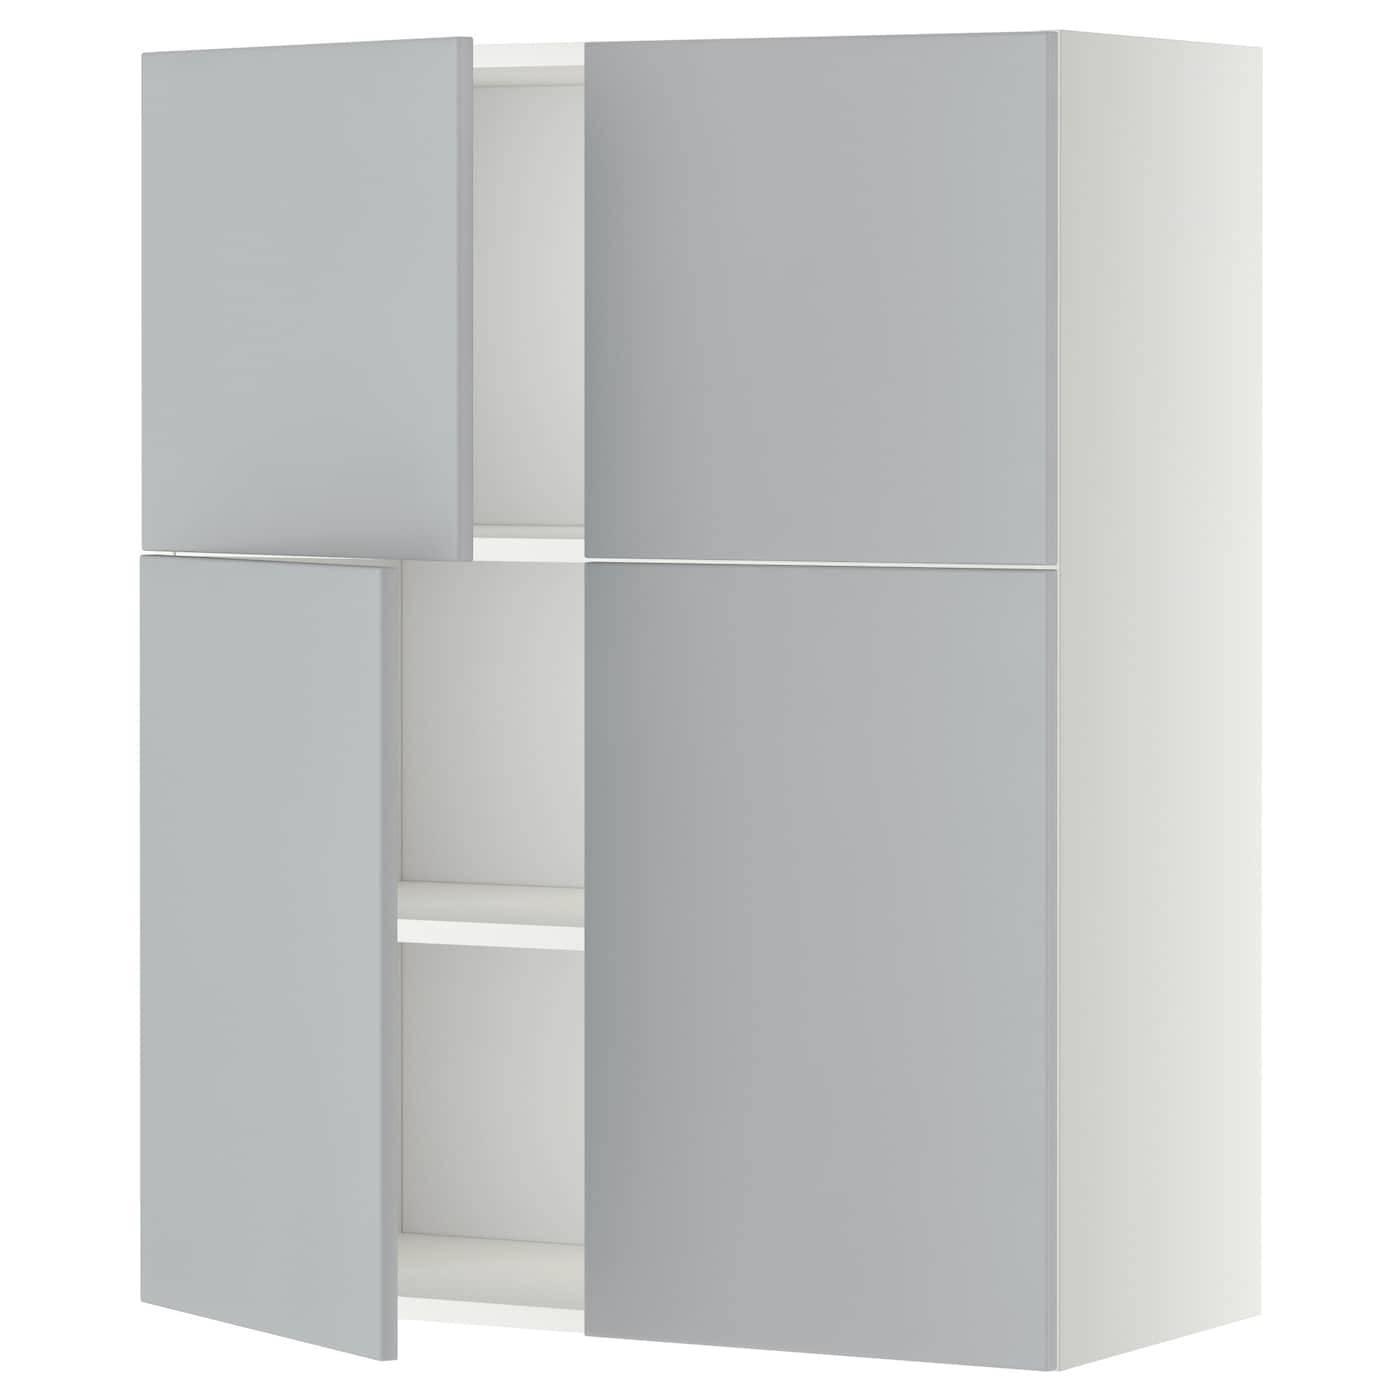 Kitchen Larder Cabinets Metod Wall Cabinet With Shelves 4 Doors White Veddinge